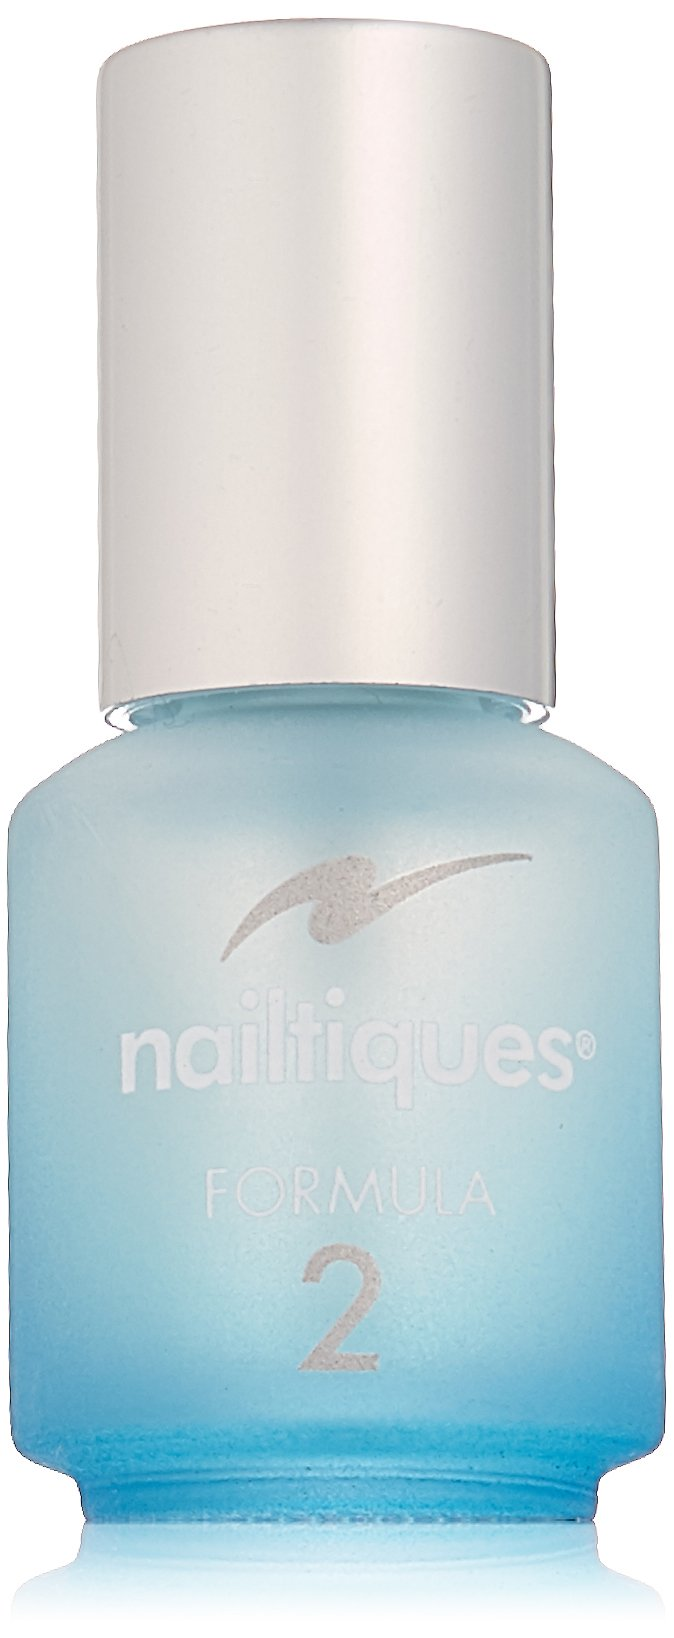 Nailtiques Nail Protein Formula # 2, 0.25 Fl. Oz (Pack of 1) by Nailtiques